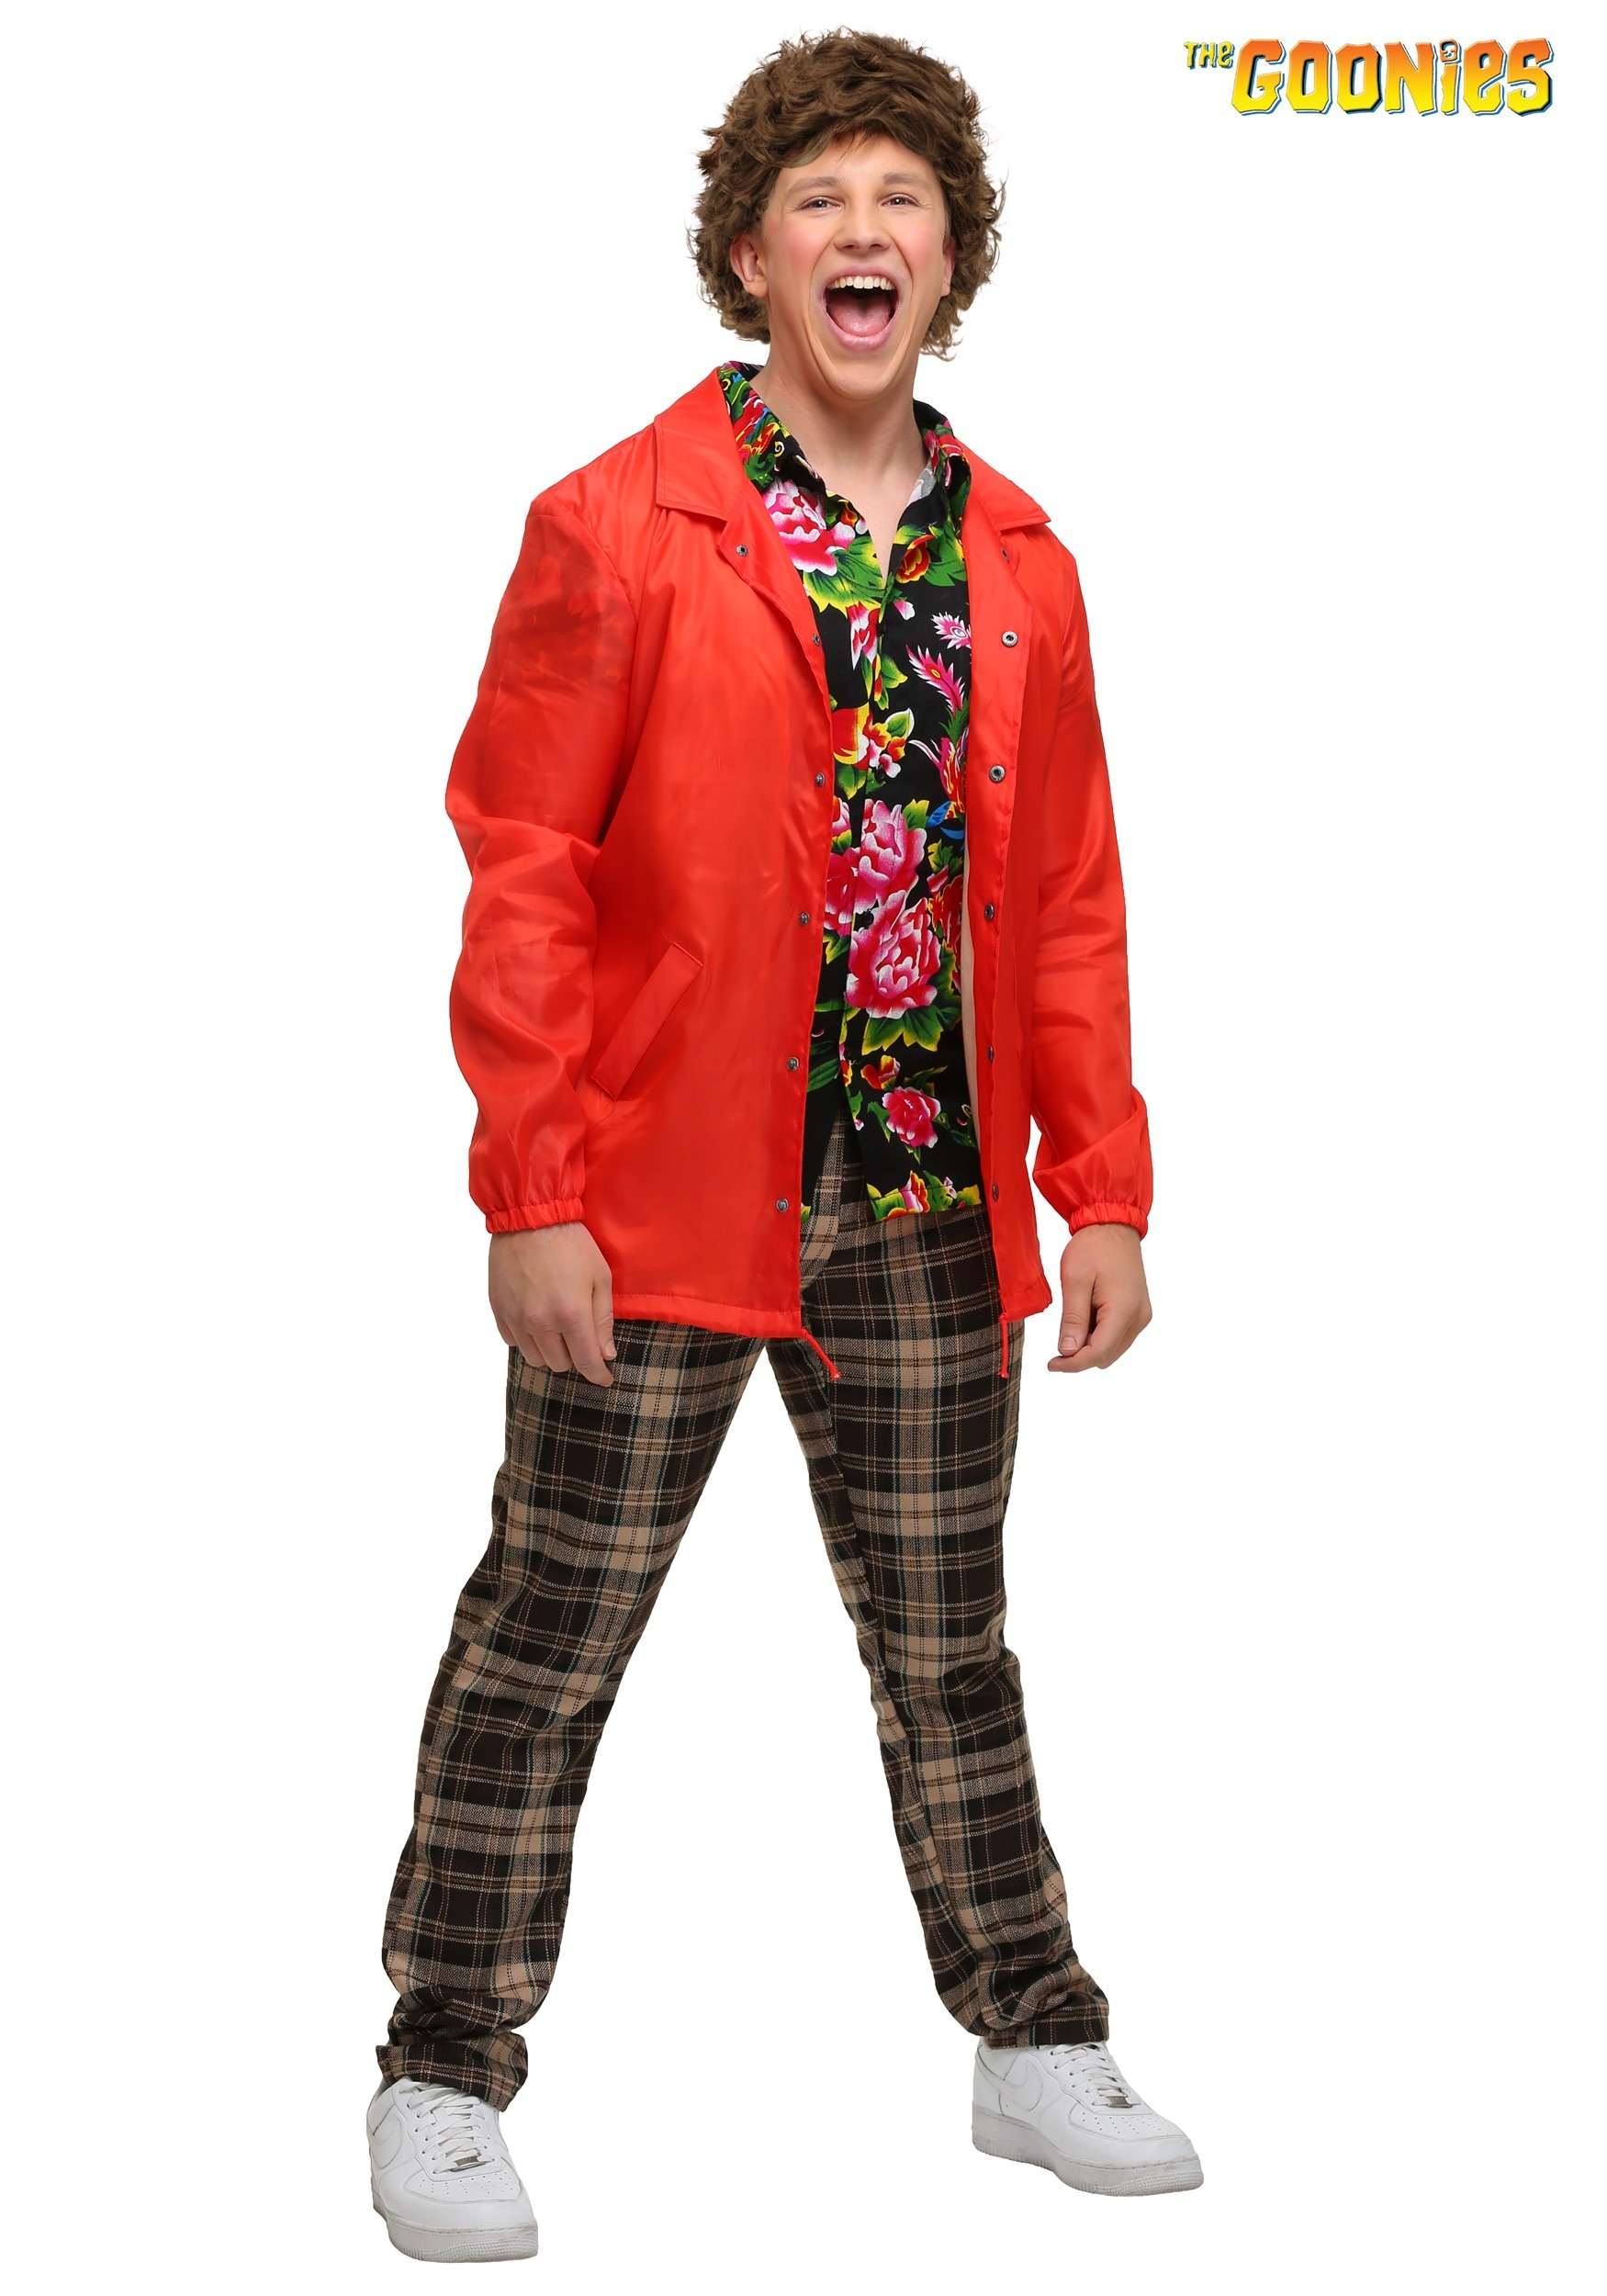 Adult Plus Goonies Chunk Costume FUN2241PL